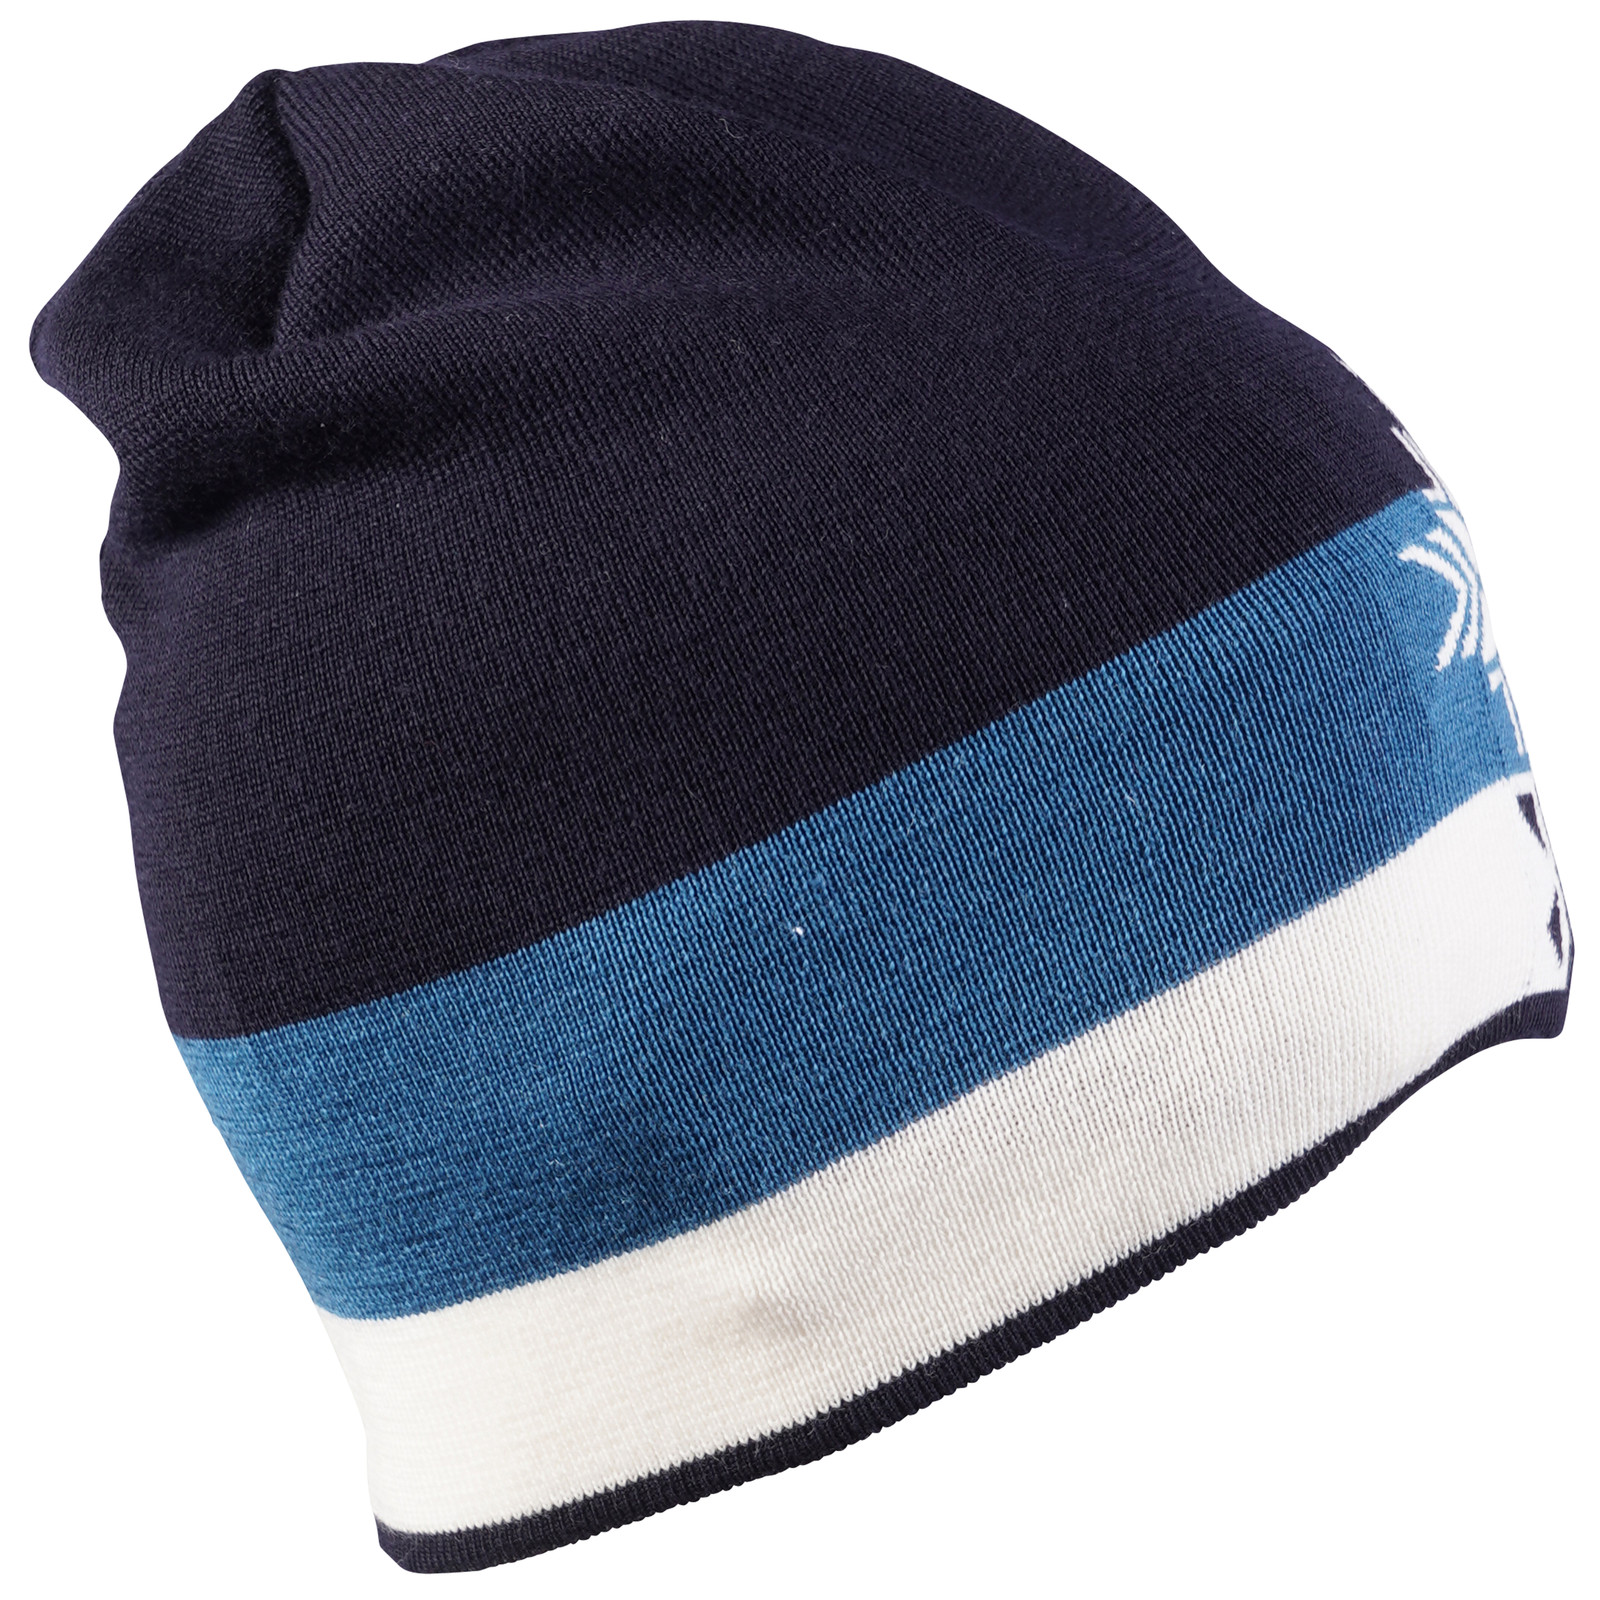 Dale of Norway Geilolia Hat - Navy/Arctic Blue/Off White, 48261-C